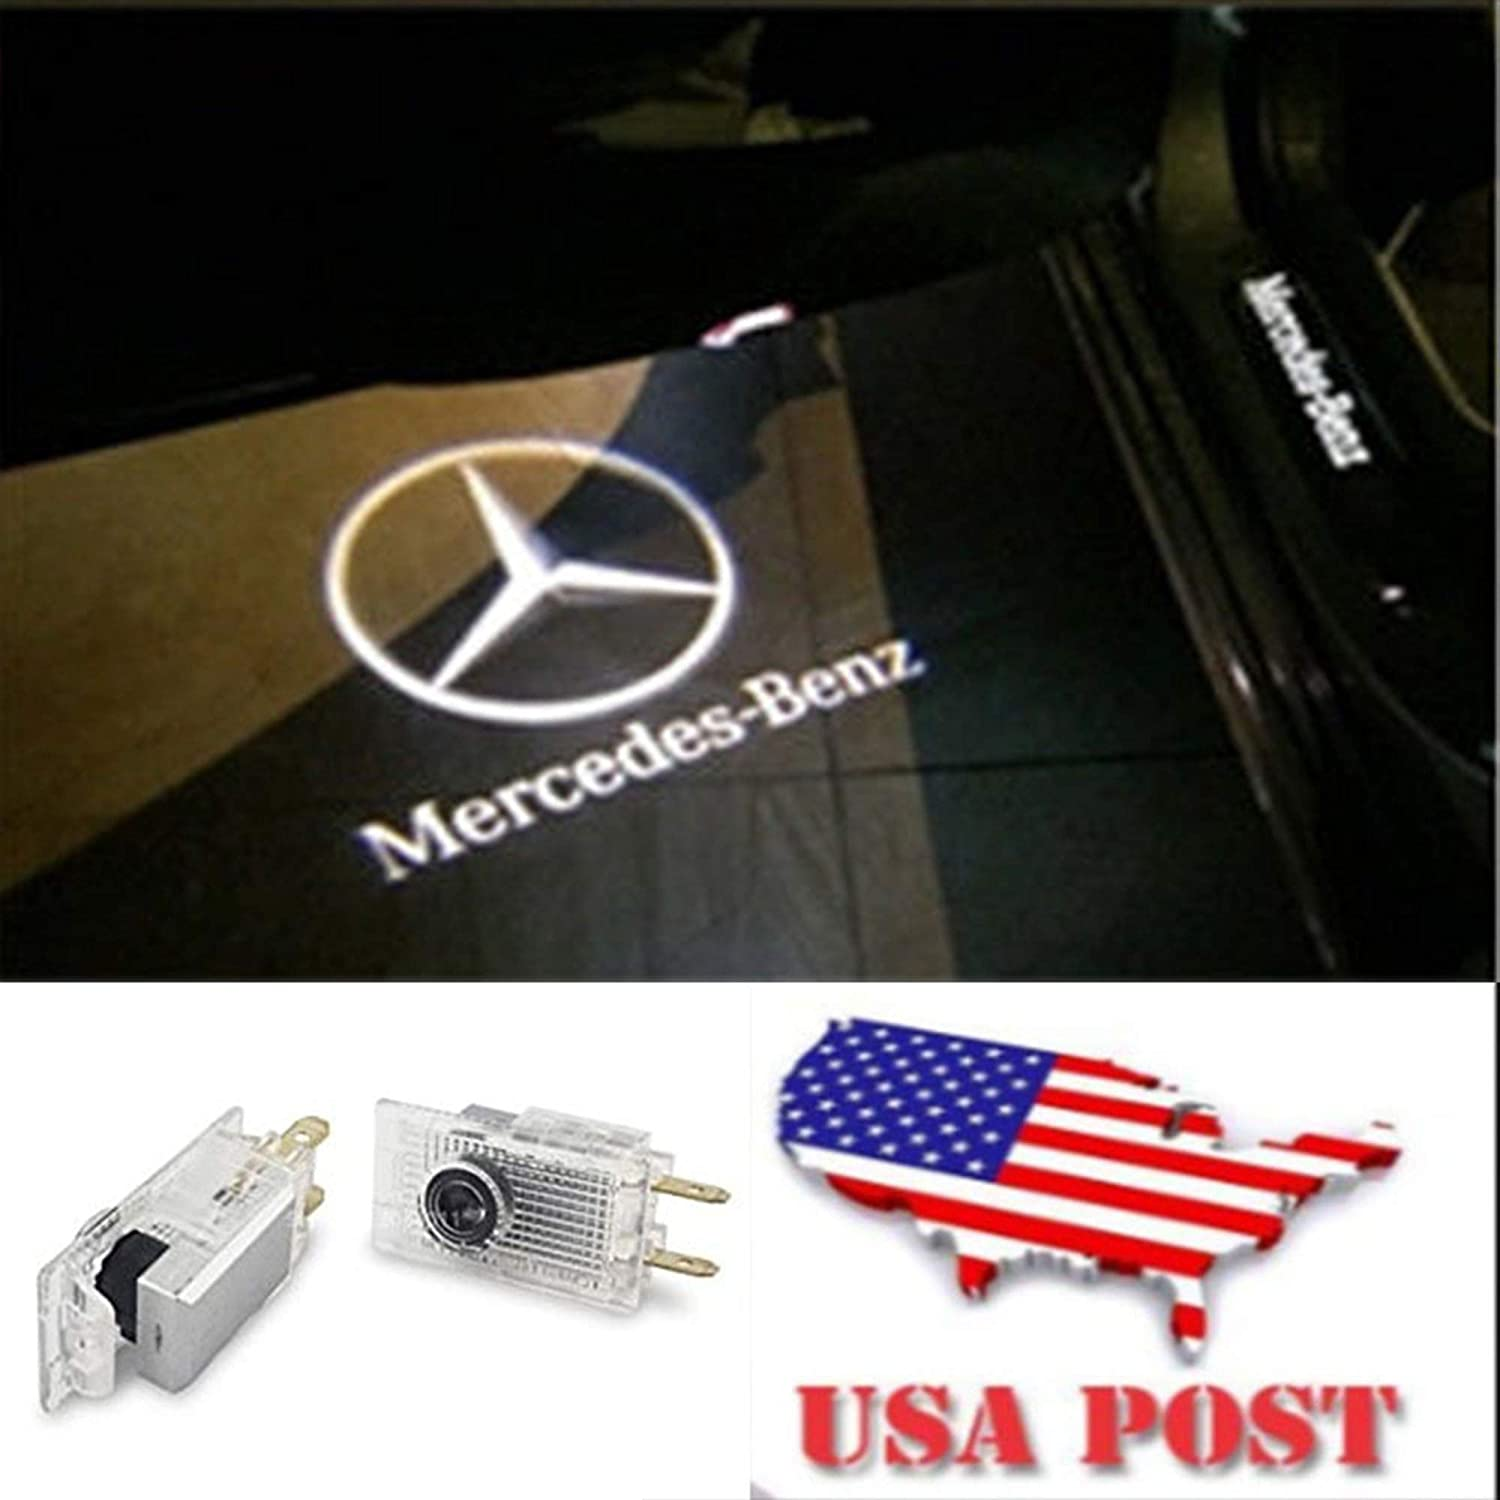 CNAutoLicht 2X Cree LED Door Step Courtesy Light Welcome Light Laser Shadow Logo Projector Lamp For Mercedes Benz W210 E200 E220 E230 E240 E250 E270 E280 E290 E300 E320 E430 E36 AMG E55 AMG 95-02#2